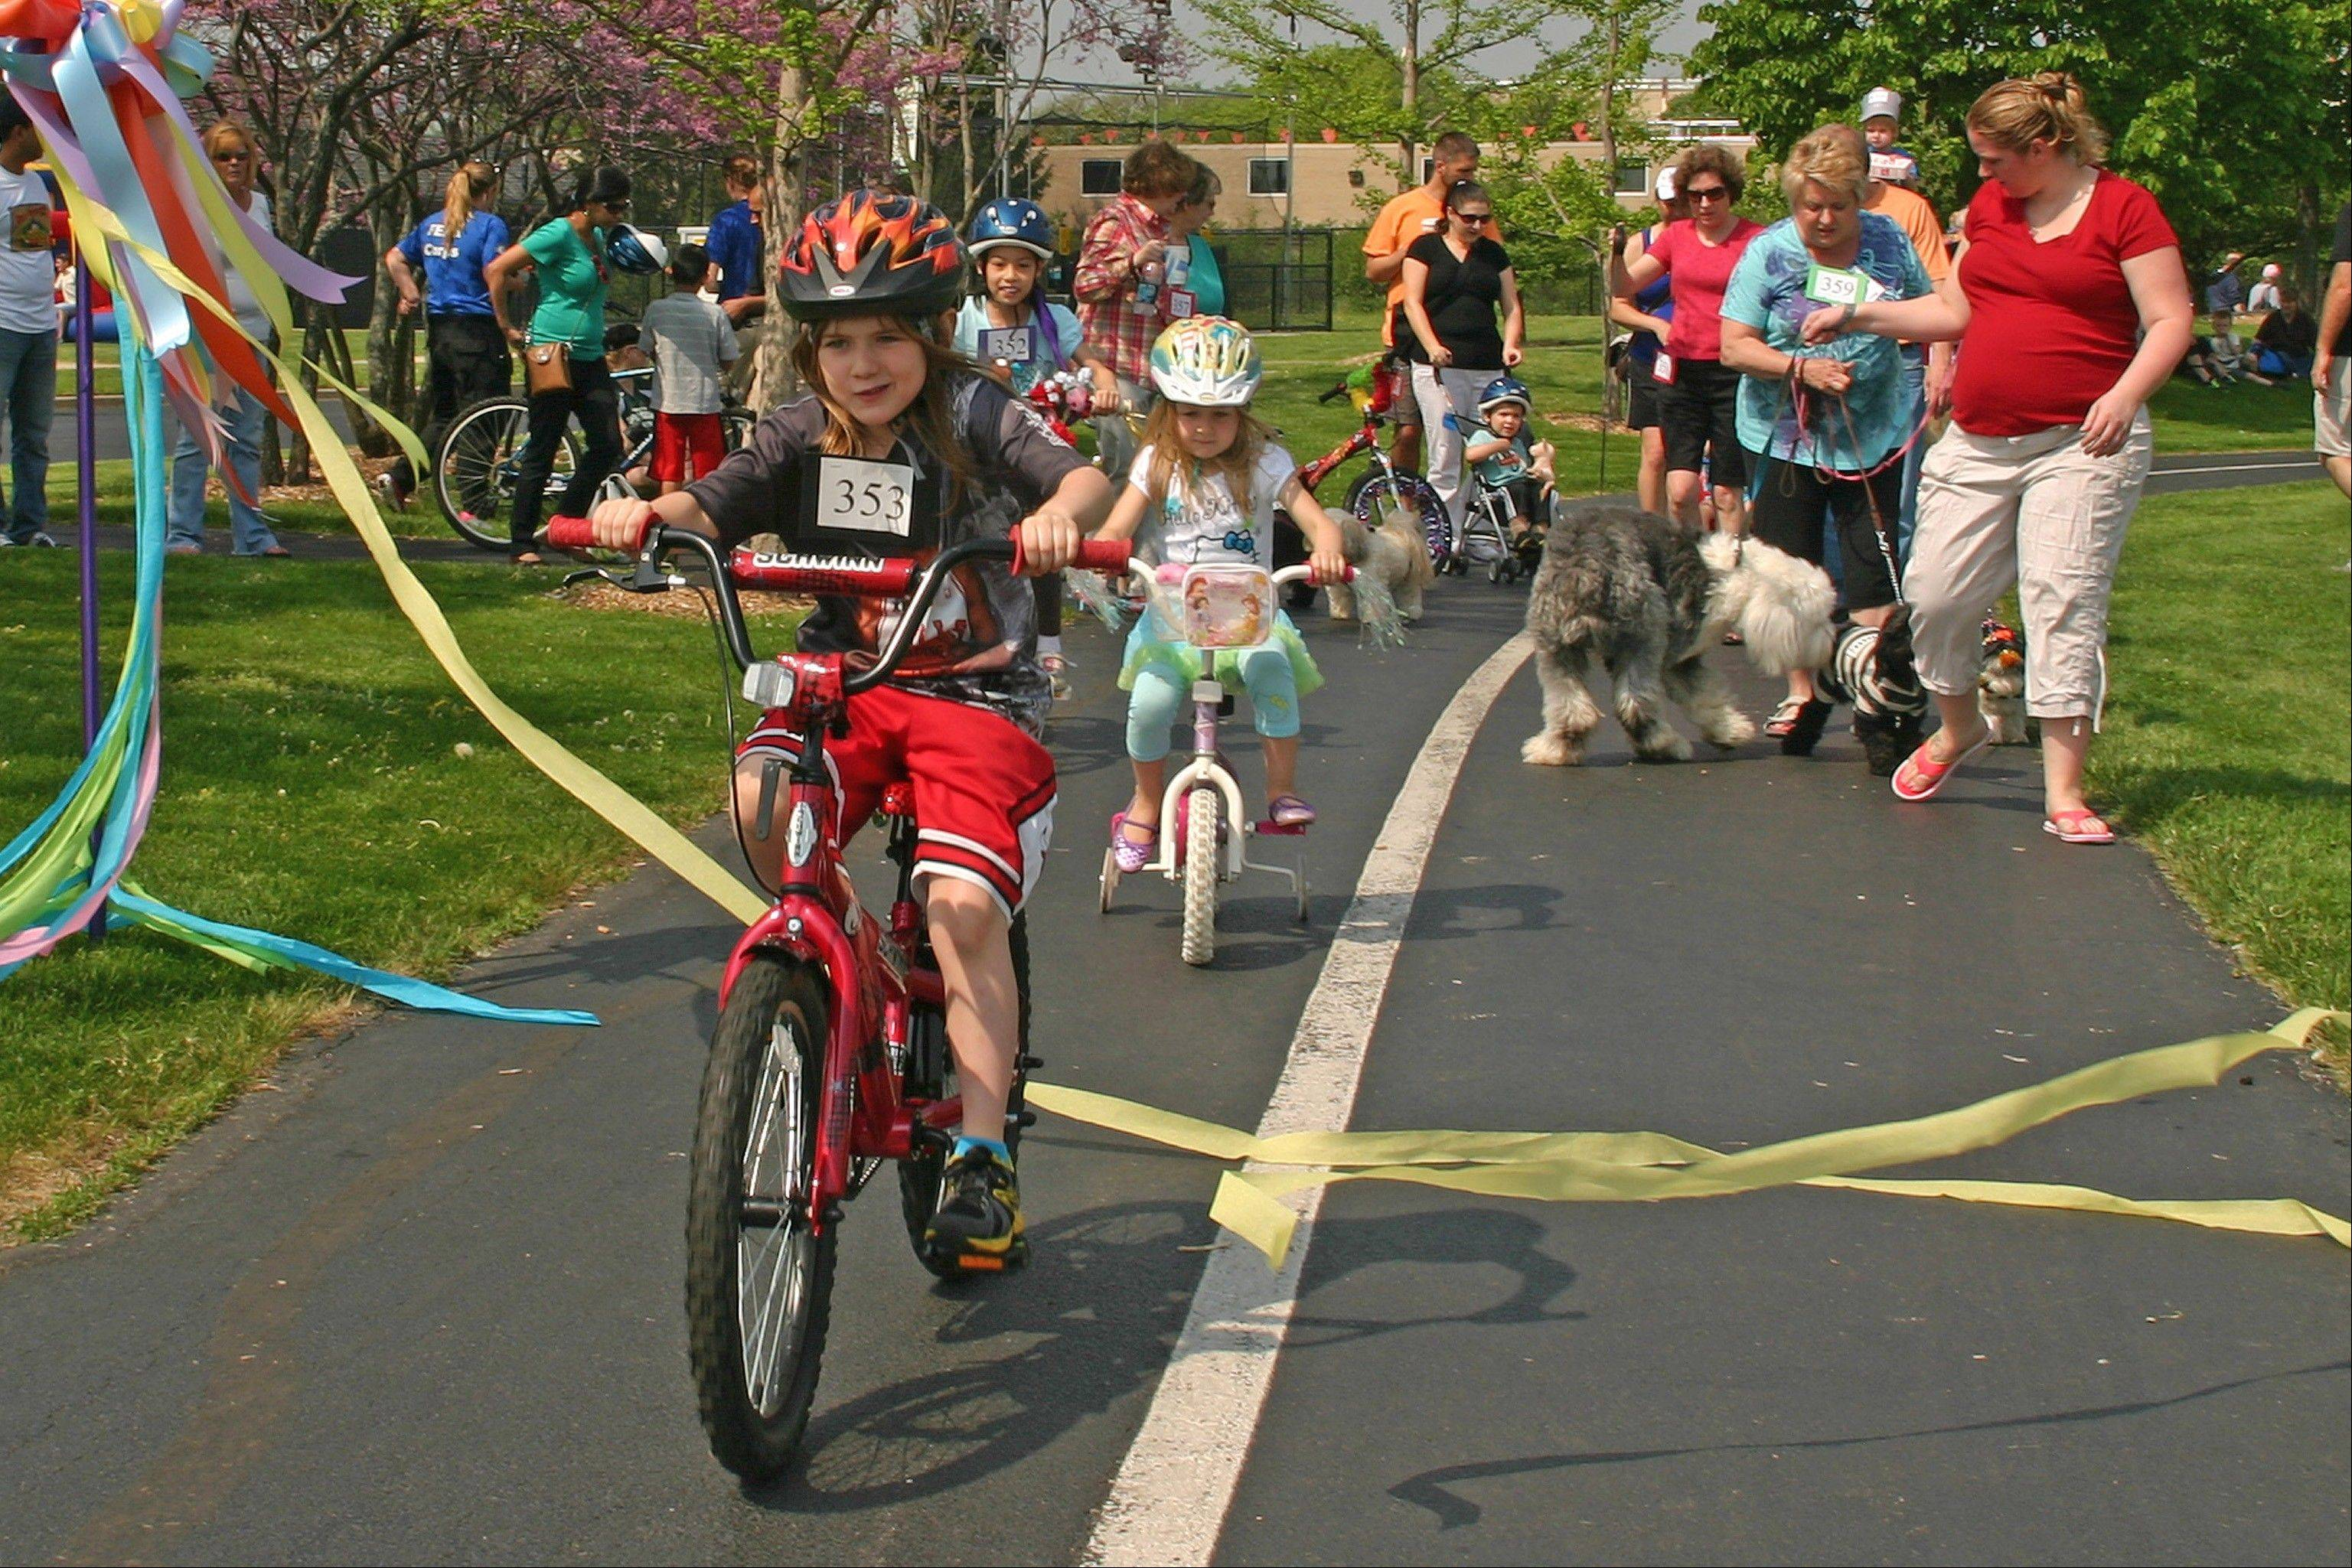 Katelyn Dahl was awarded the prize for best helmet in the Pooch, Pet, and Pedal Parade during Saturday's Des Plaines Park District Spring Fun Fair.